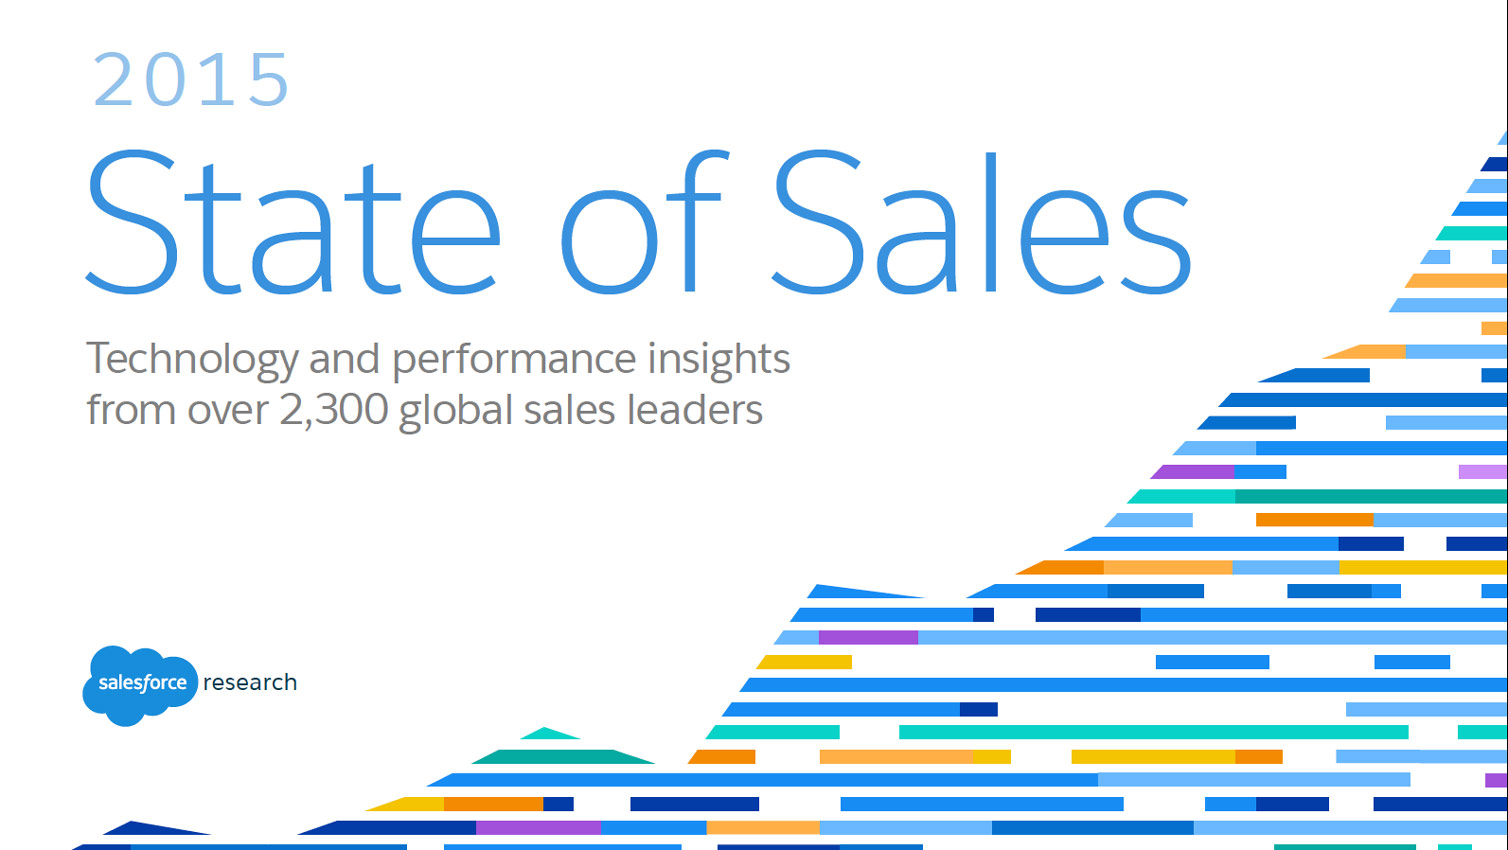 Salesforce reveals the top trends that fuel future sales performance